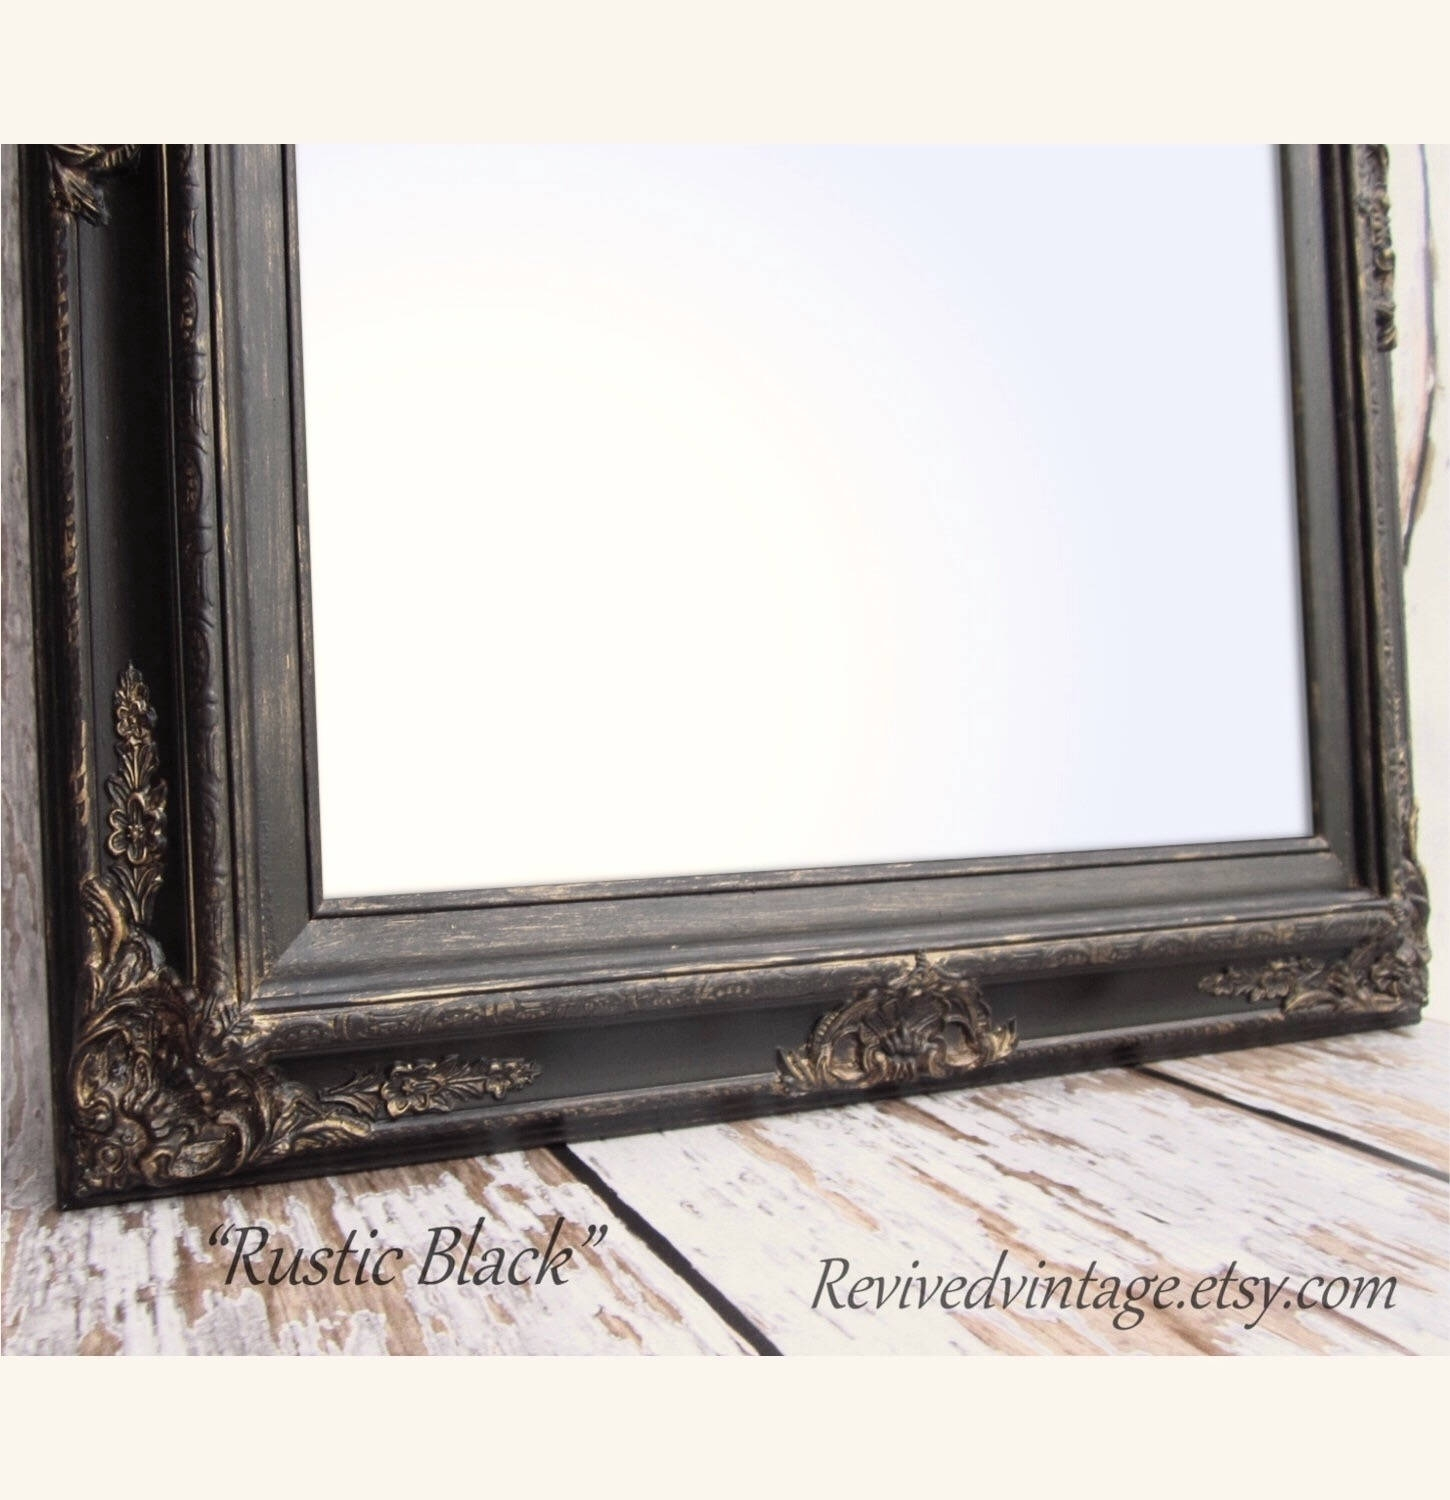 Large Ornate Mirror Etsy Regarding Large Ornate Mirrors For Sale (View 7 of 15)